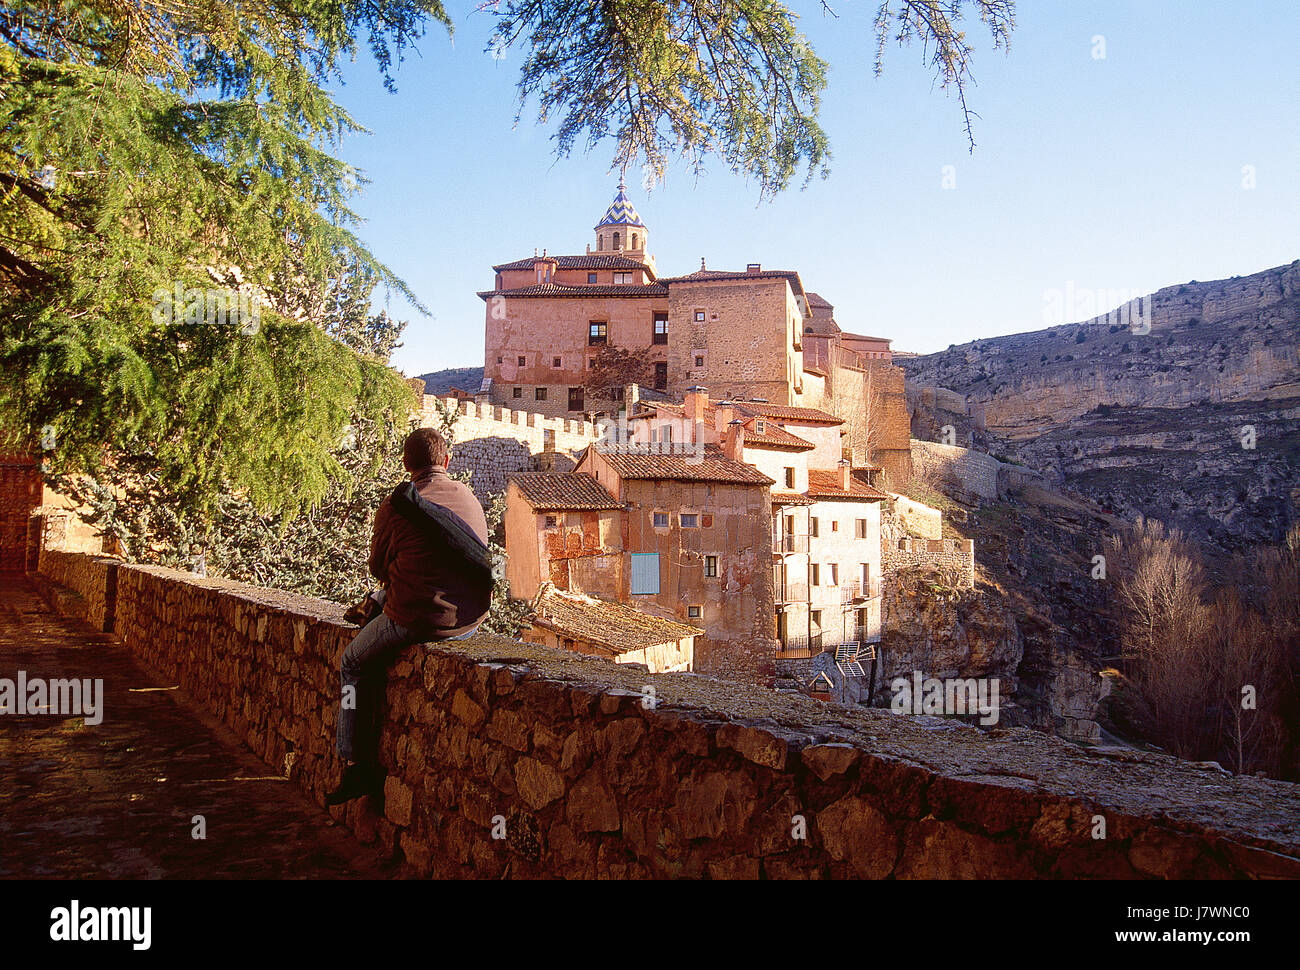 Man at the viewpoint. Albarracin, Teruel province, Aragon, Spain. - Stock Image